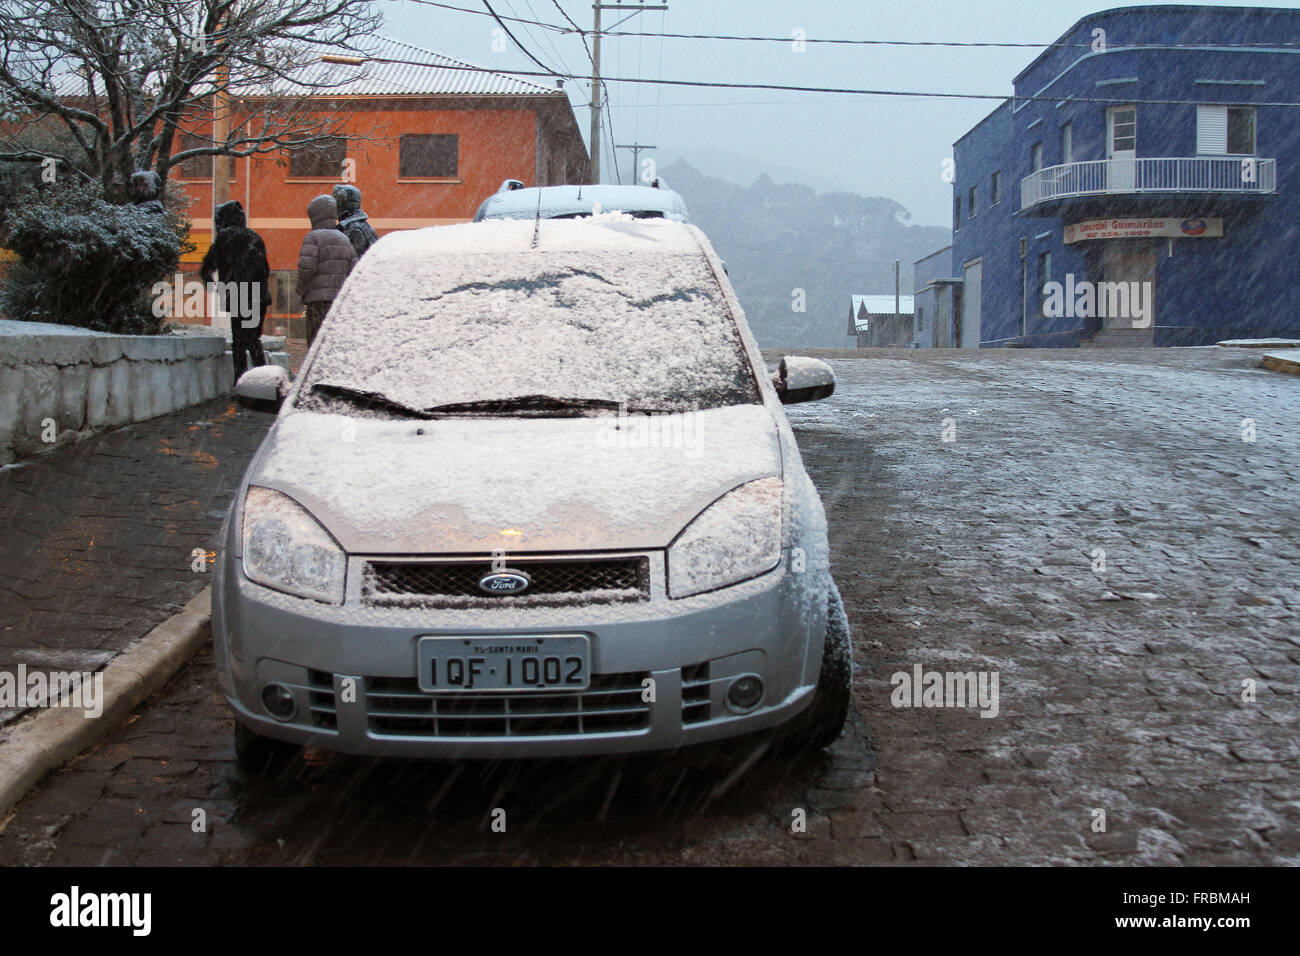 Automobile parked covered with snow - Serra Gaucha region - Stock Image